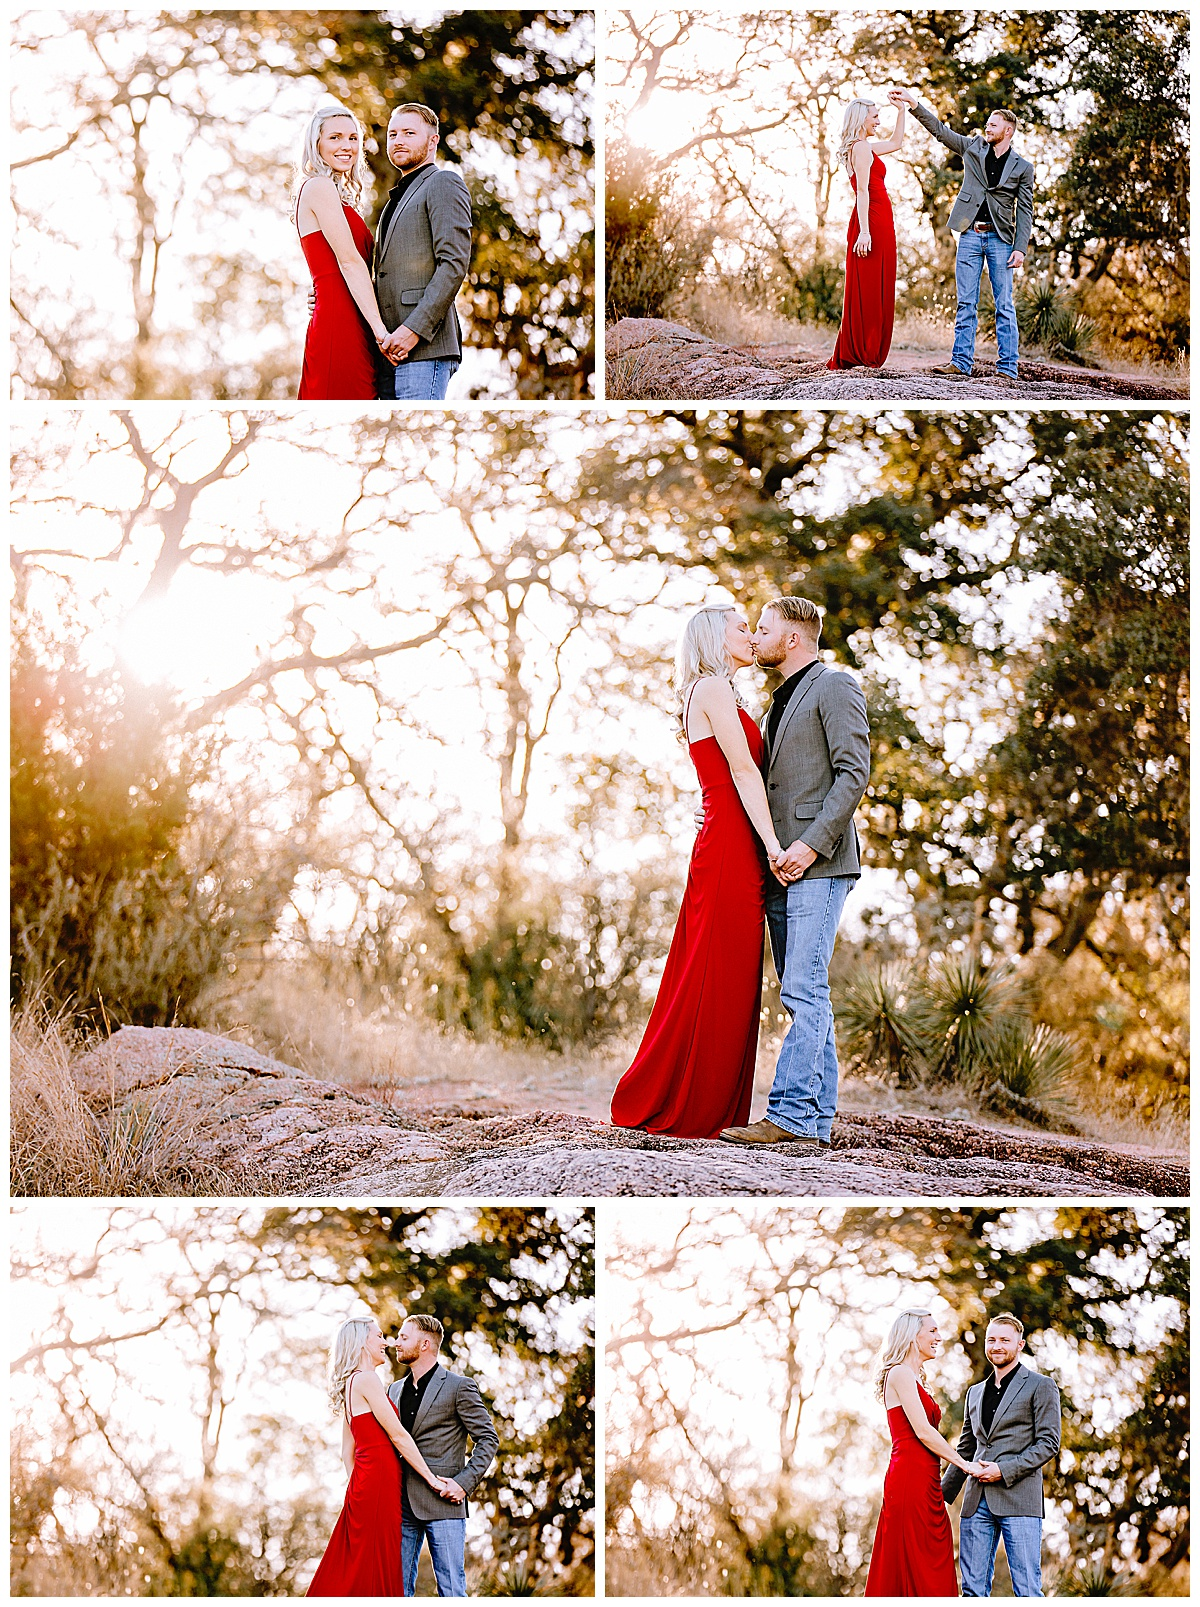 South-Texas-Wedding-Photographer-Engagement-Photos-Enchanted-Rock-Fredericksburg-Sunset-Couples-Carly-Barton-Photography_0014.jpg